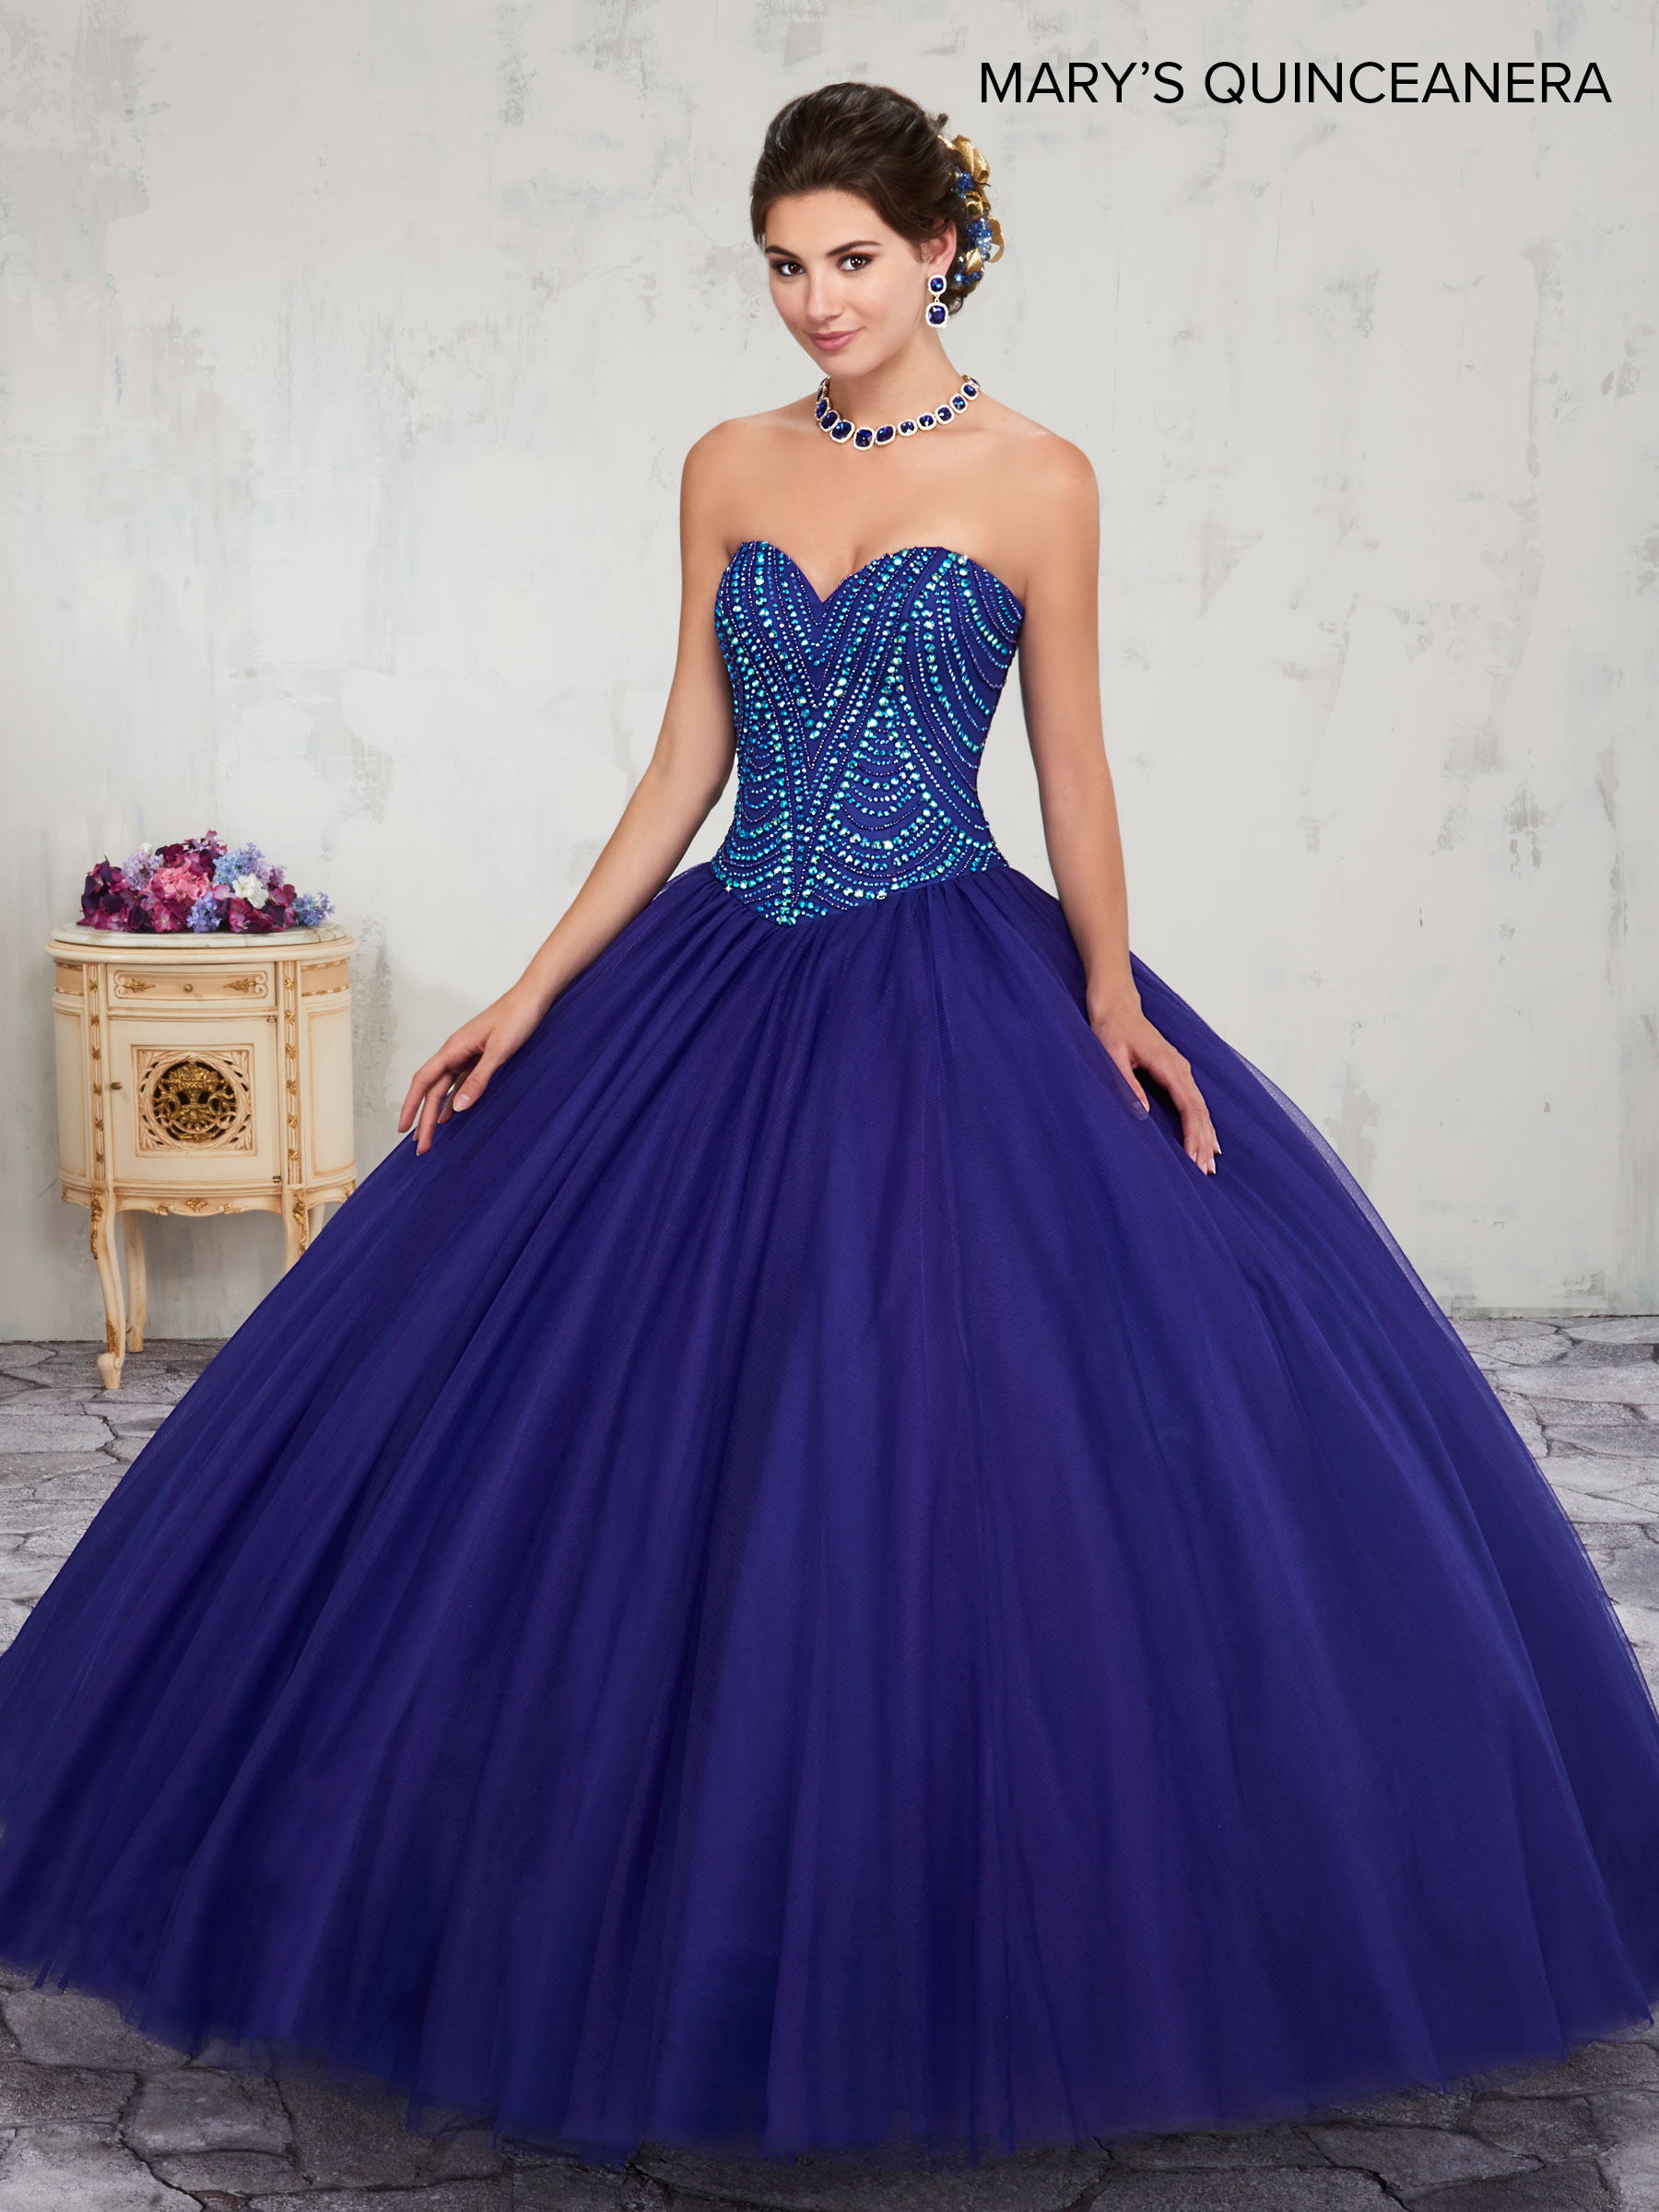 Marys Quinceanera Dresses Style Mq1010 In Cobalt Blue